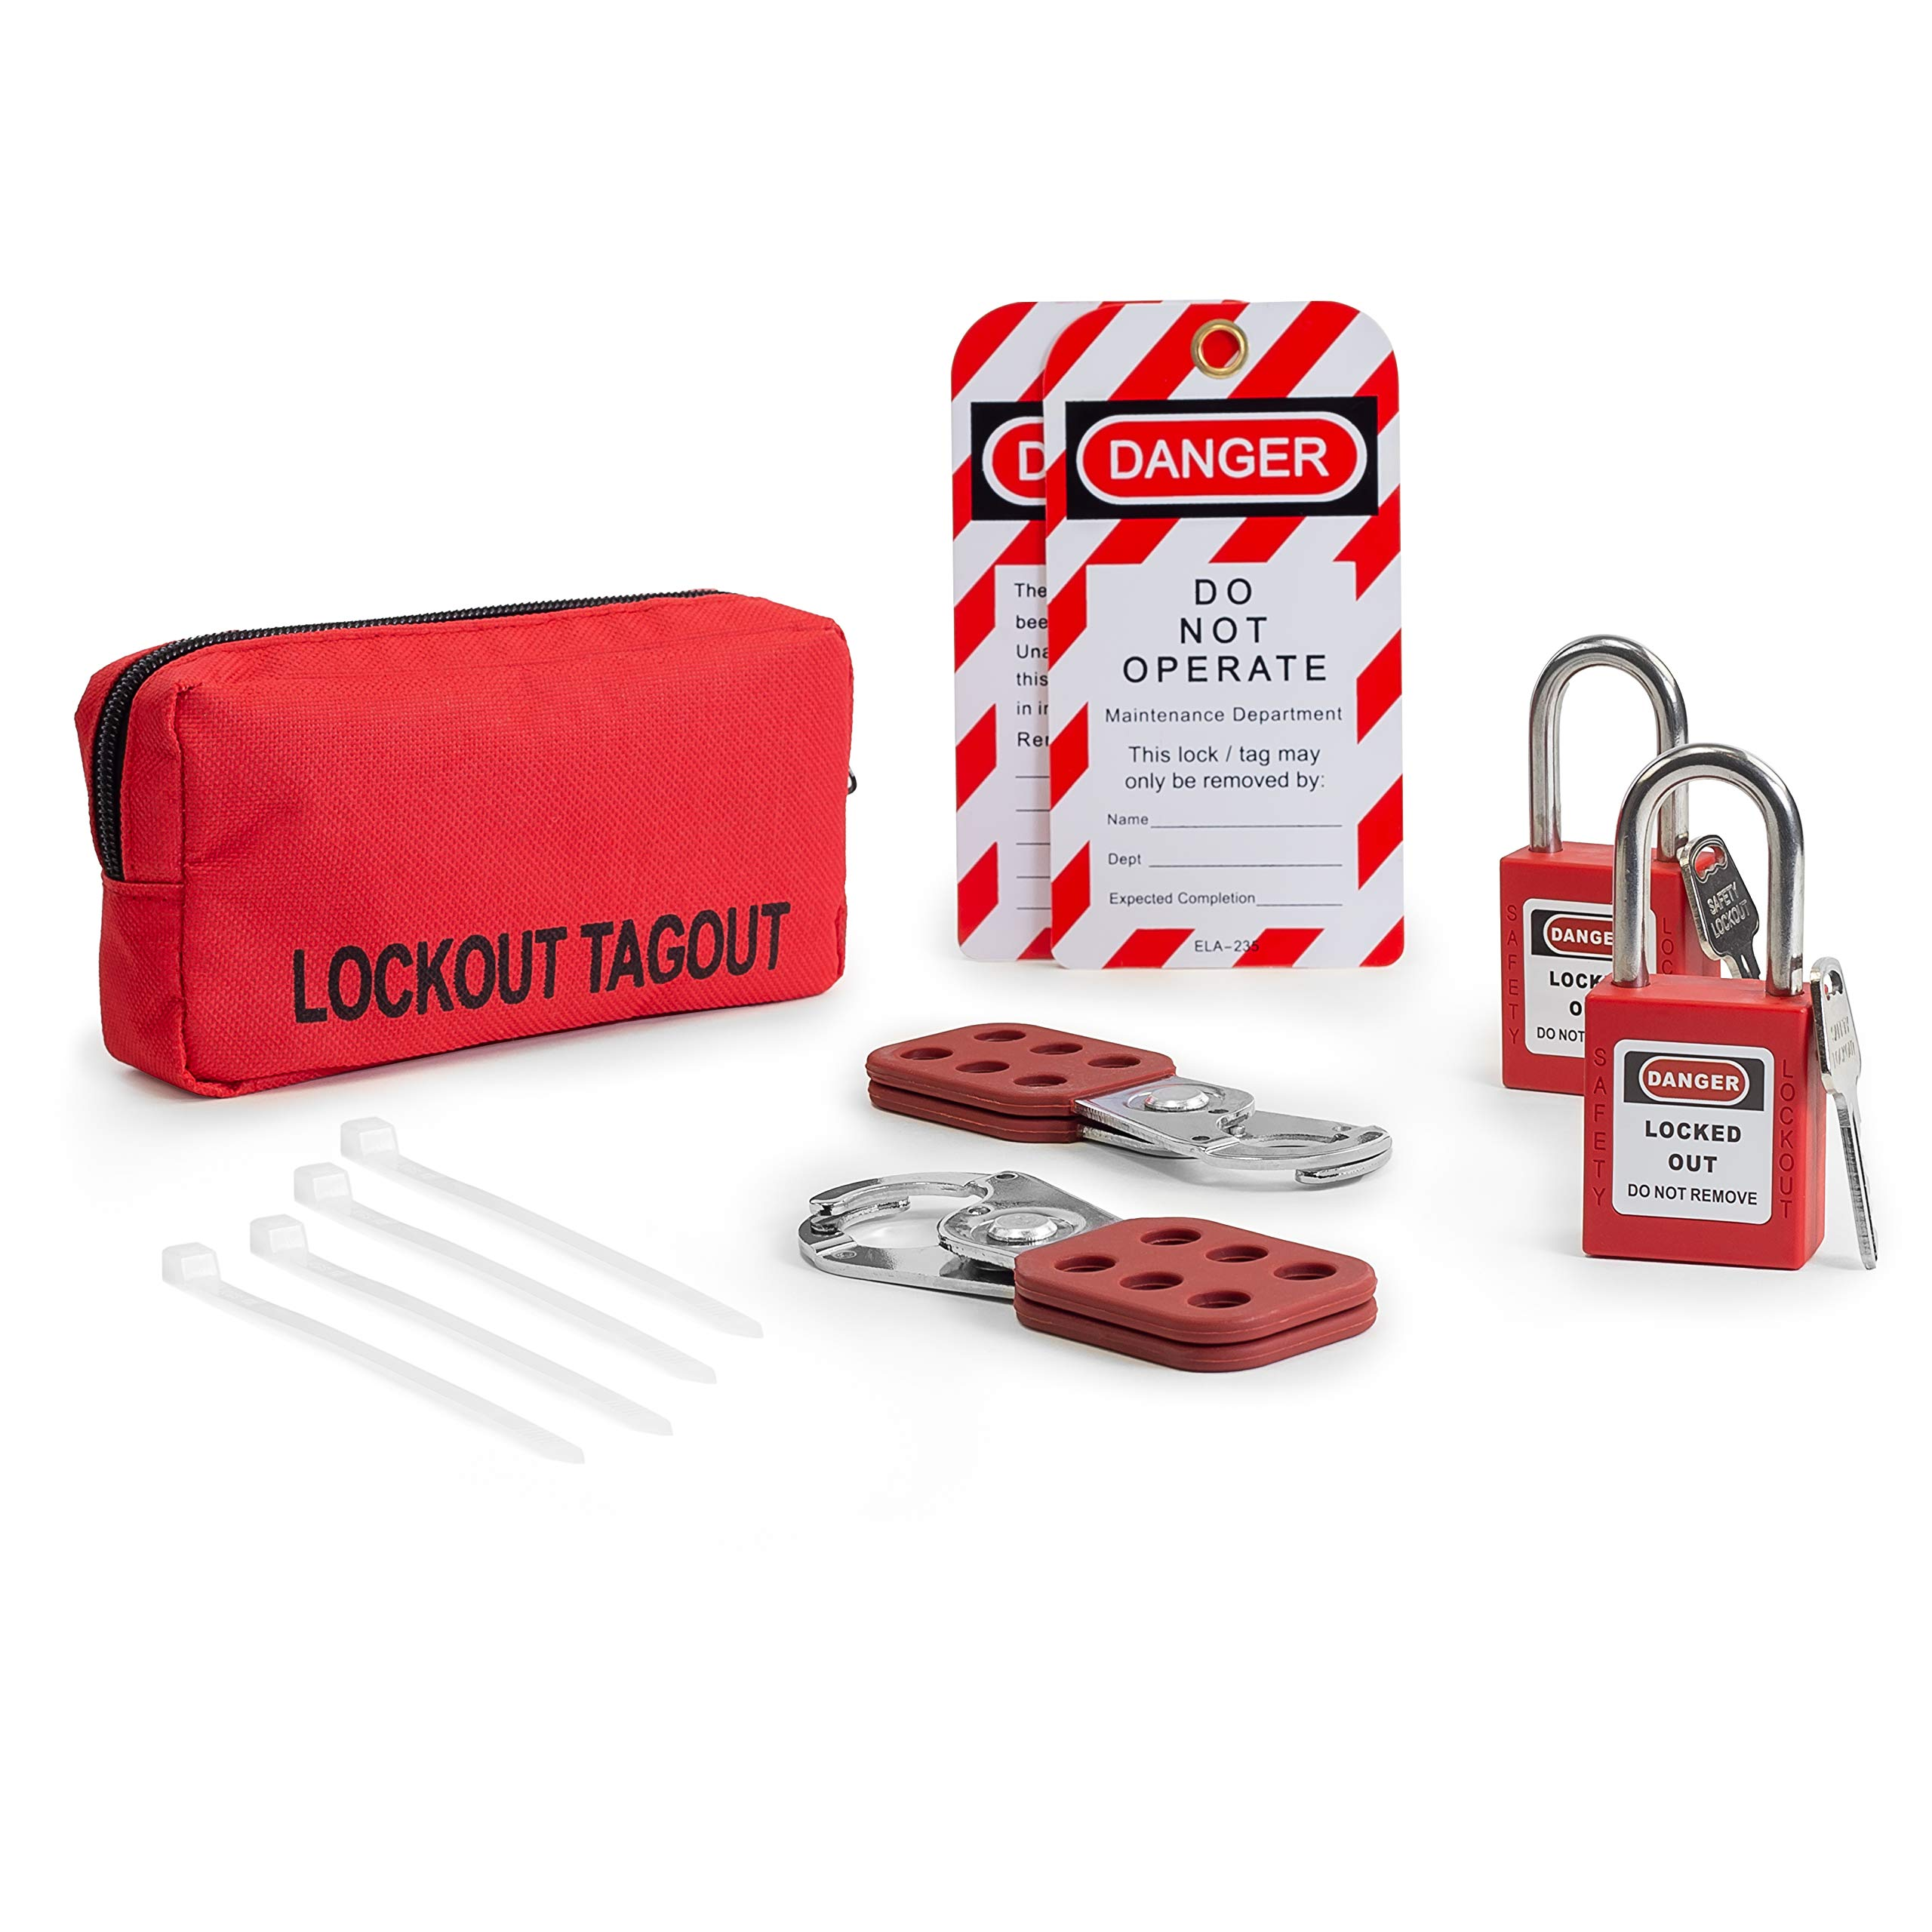 Lockout TAGOUT KIT w/ 2 Hasps, 2 Lockout Tags, 3 Cable Ties, 2 Red Lockout Safety Padlocks, and Carrying Case | OSHA Compliance for Electrical Lock Out tag Out by TRADESAFE